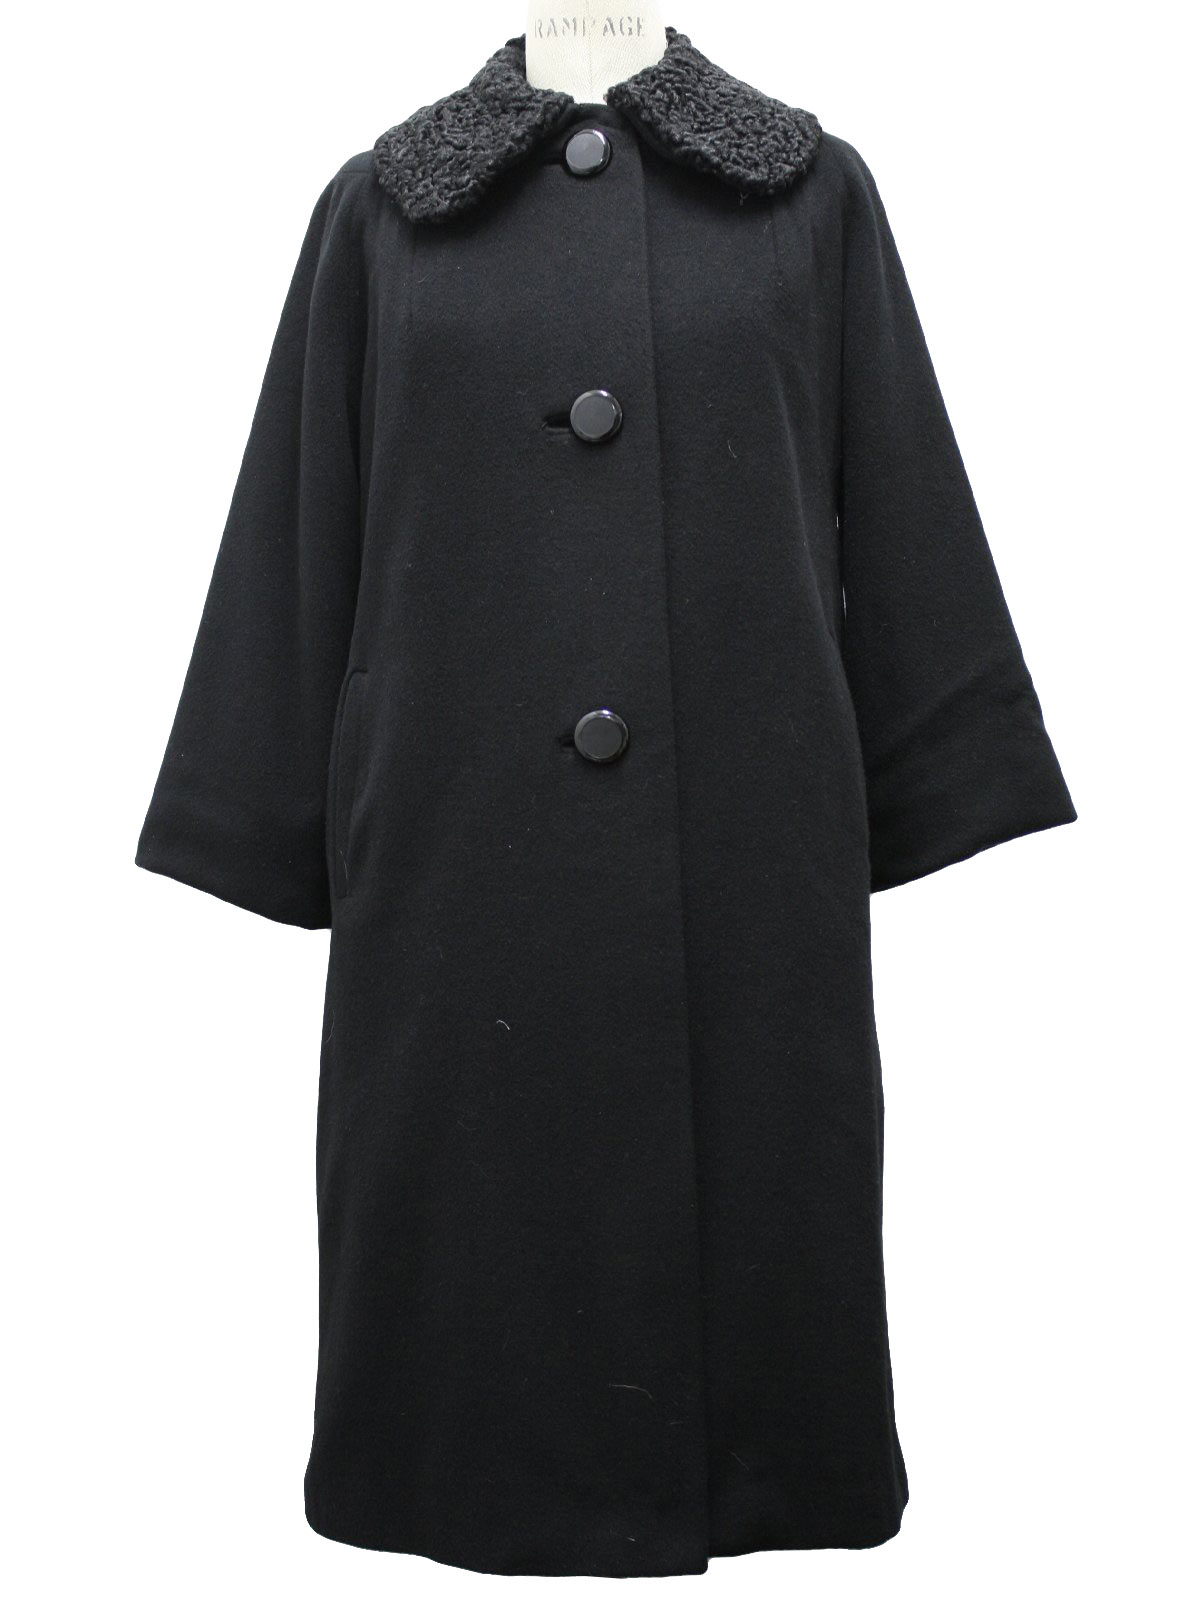 1960's Exclusive Quality Womens Cashmere Jacket 100.00 SALE $90.00 In stock. Item No. 49750-A1301